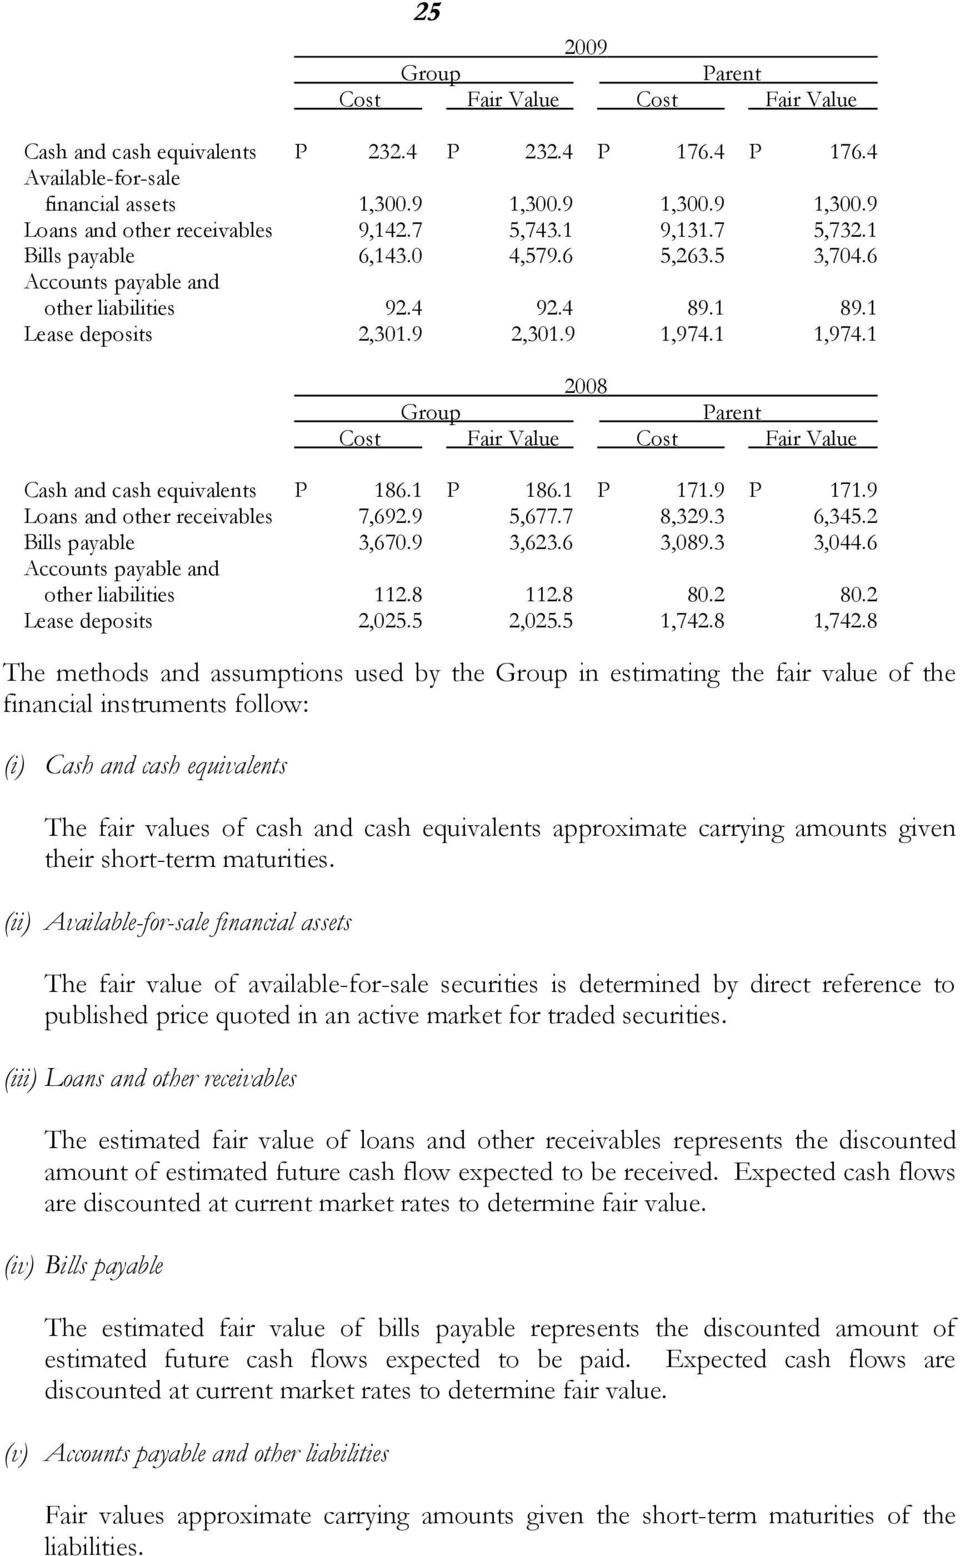 1 2008 Parent Cost Fair Value Cost Fair Value Cash and cash equivalents P 186.1 P 186.1 P 171.9 P 171.9 Loans and other receivables 7,692.9 5,677.7 8,329.3 6,345.2 Bills payable 3,670.9 3,623.6 3,089.